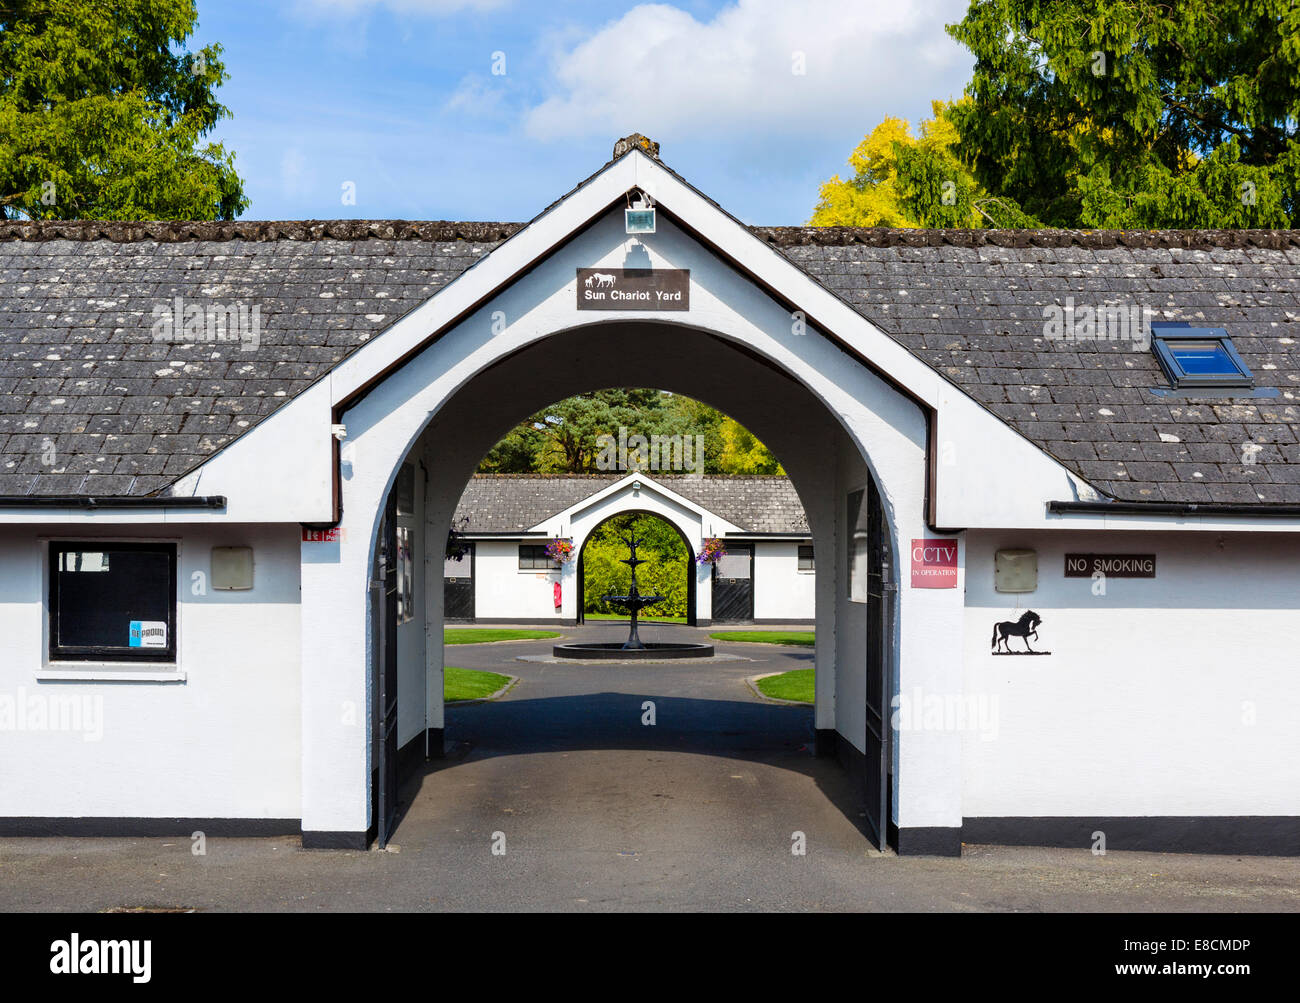 Sun Chariot Yard at the Irish National Stud breeding facility, Tully, Kildare, County Kildare, Republic of Ireland - Stock Image